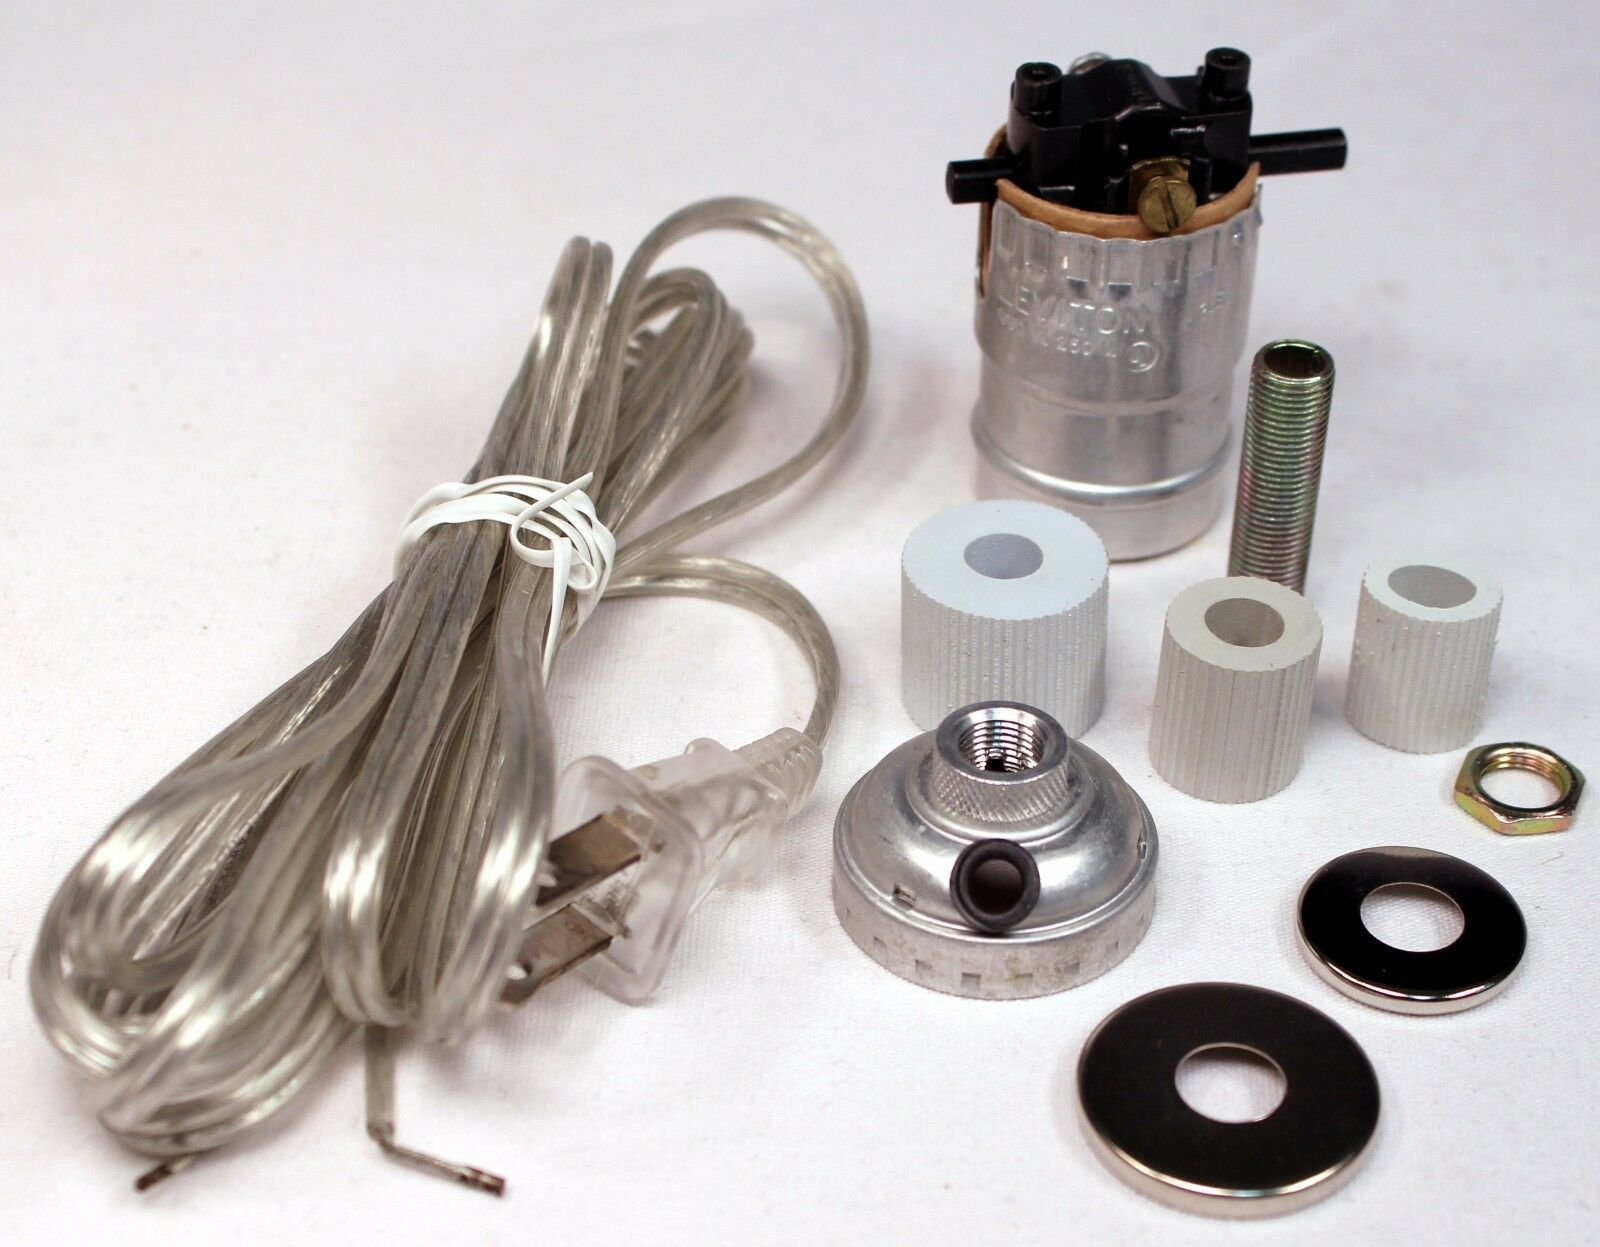 silver make a lamp wiring kit for wine oil bottle lamp conversion or rh ebay com lamp wiring kit walmart lamp wiring kit lowes